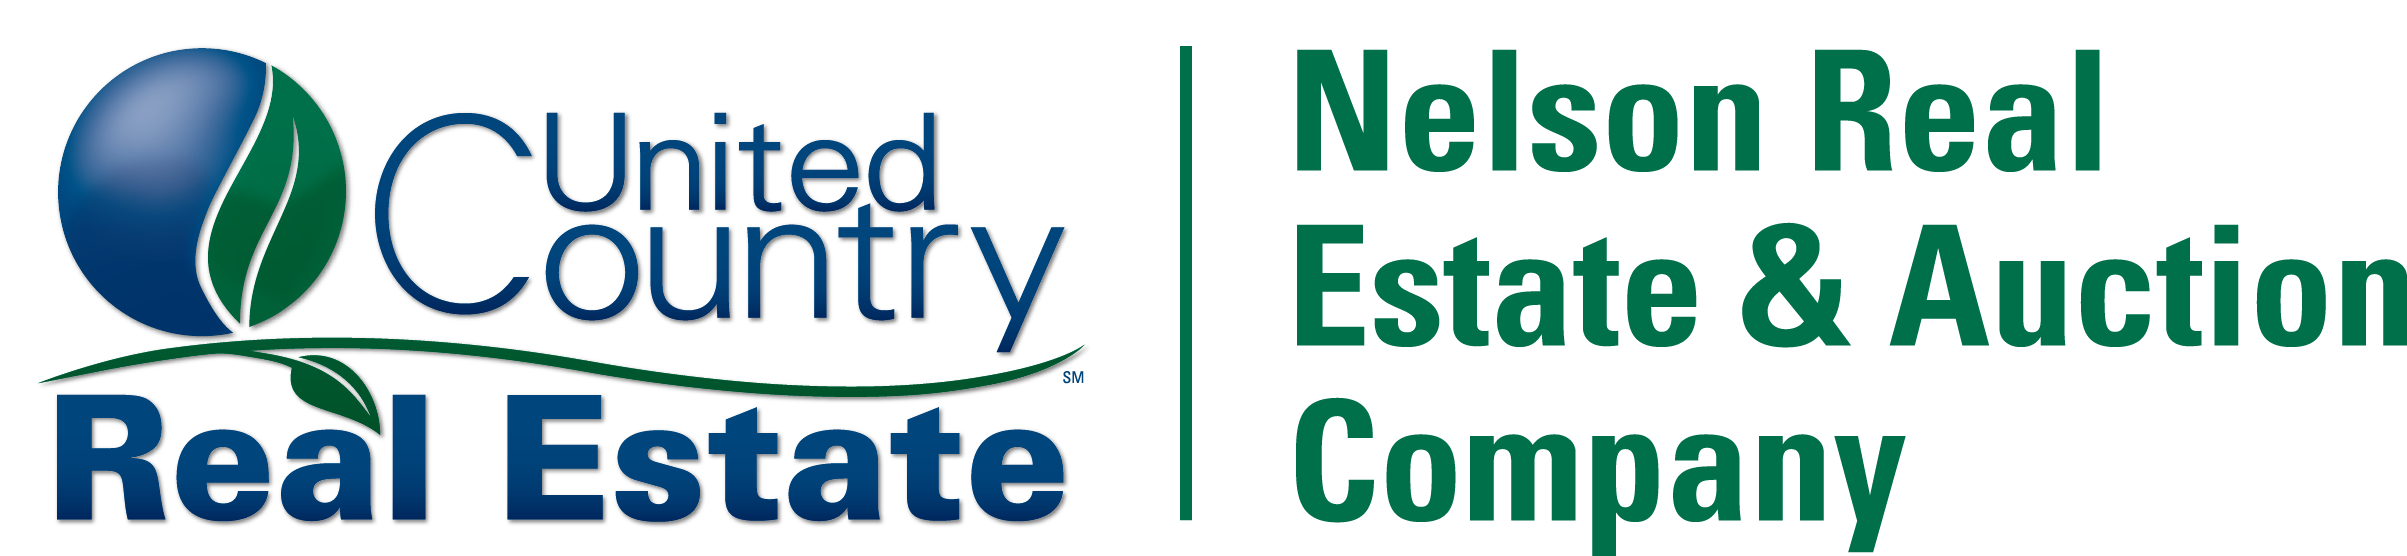 Nelson Real Estate & Auction Company_H